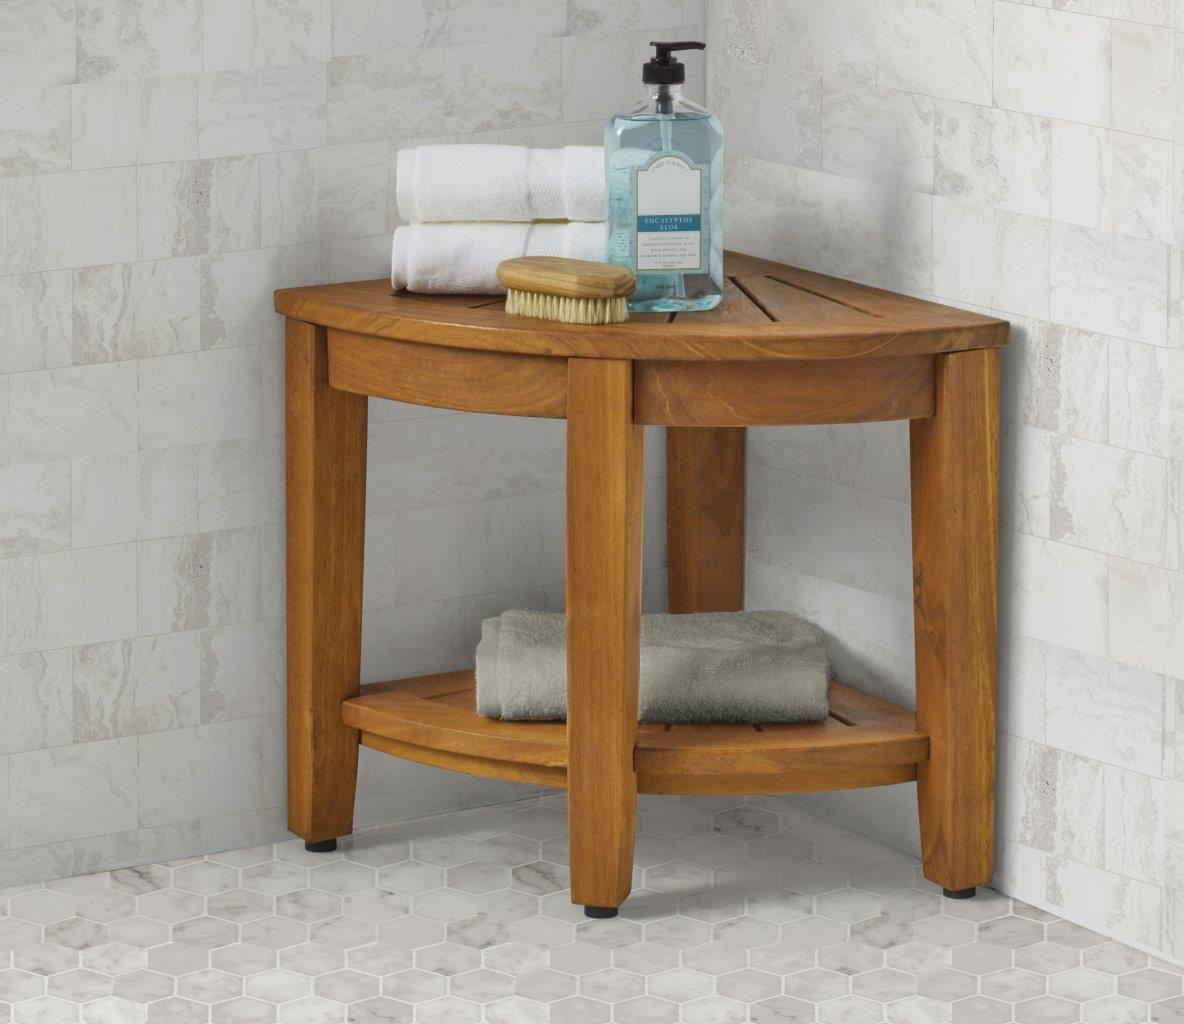 teak shower chairs with arms where to buy a rocking chair bench bath stools furniture aquateak shop all products